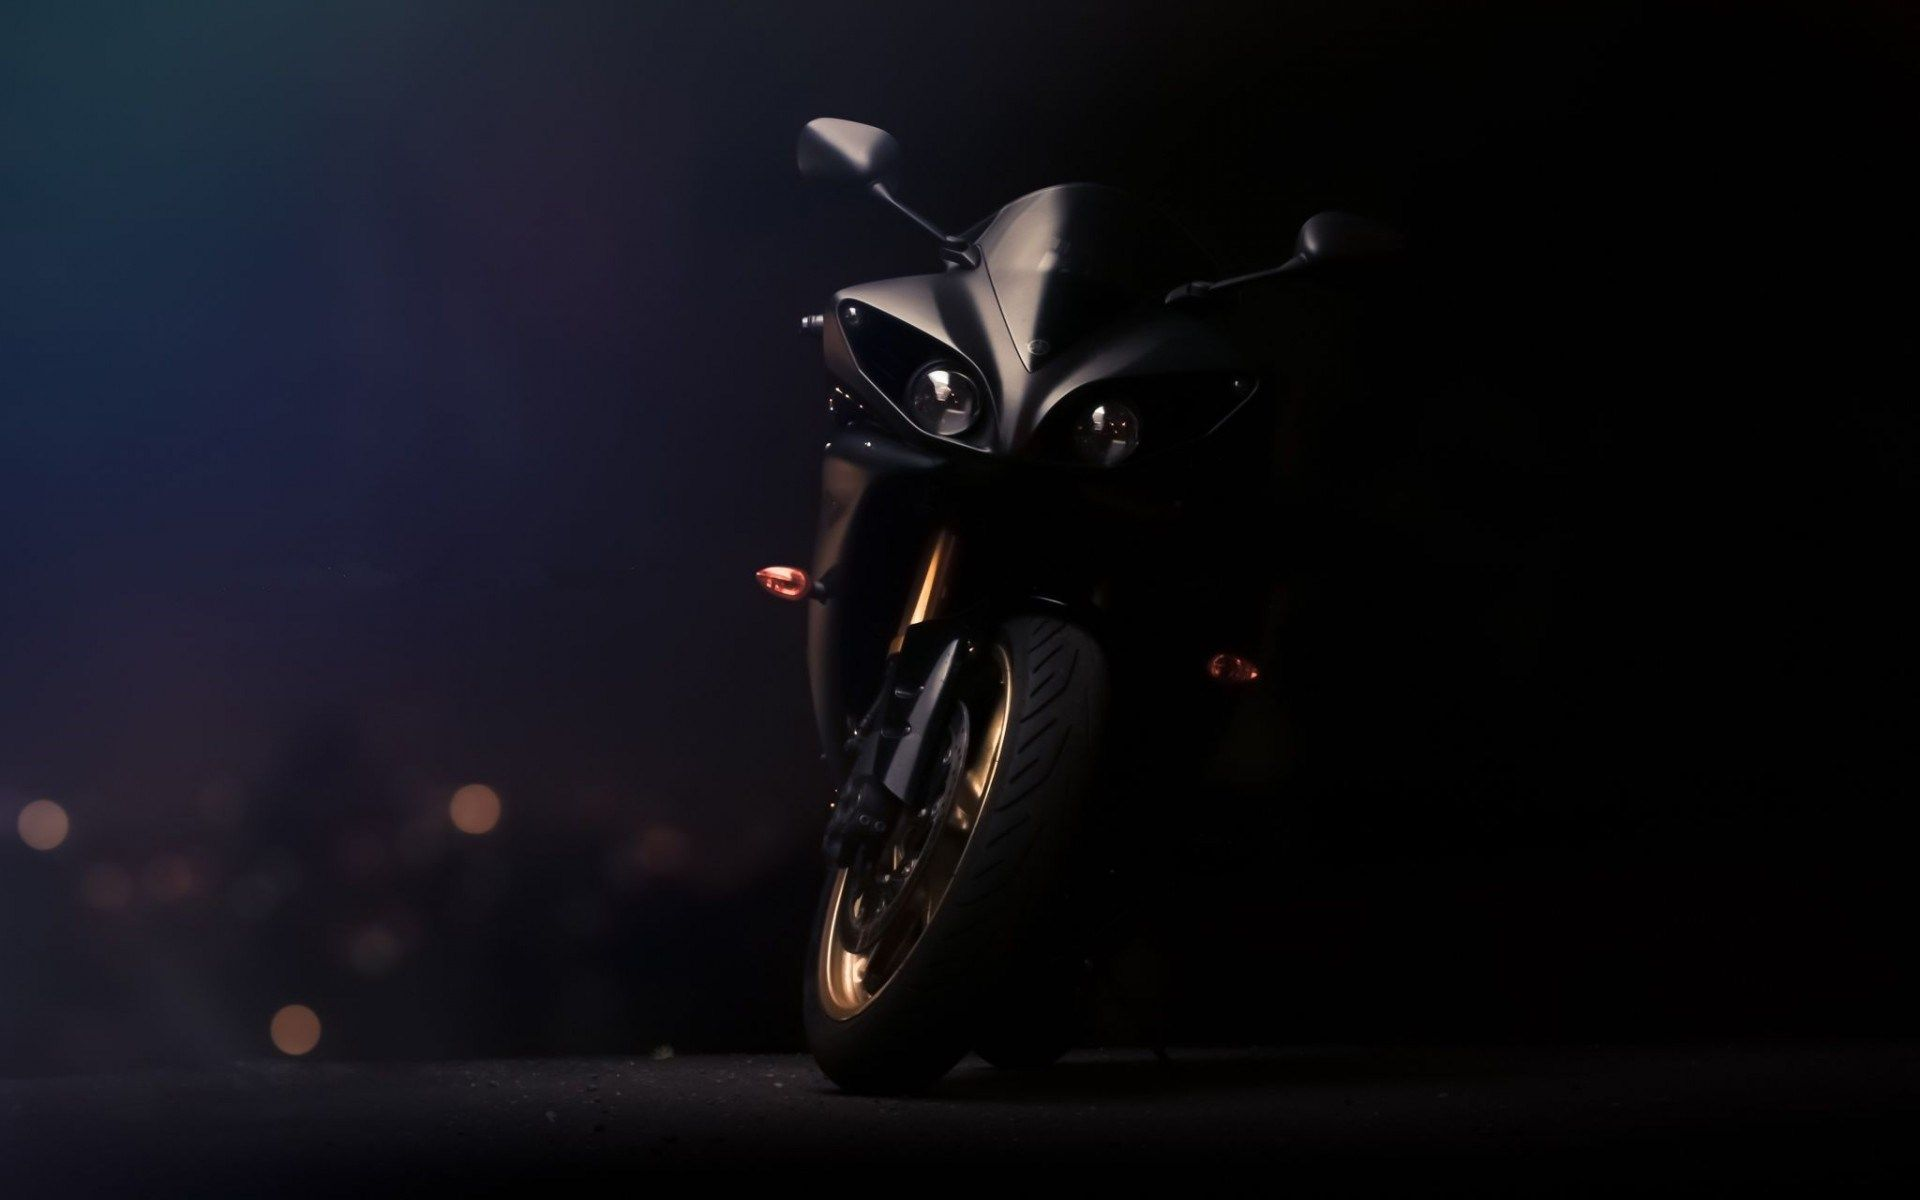 Yamaha R1 Wallpaper Black Awesome Is Free Hd Wallpaper Yamaha R1